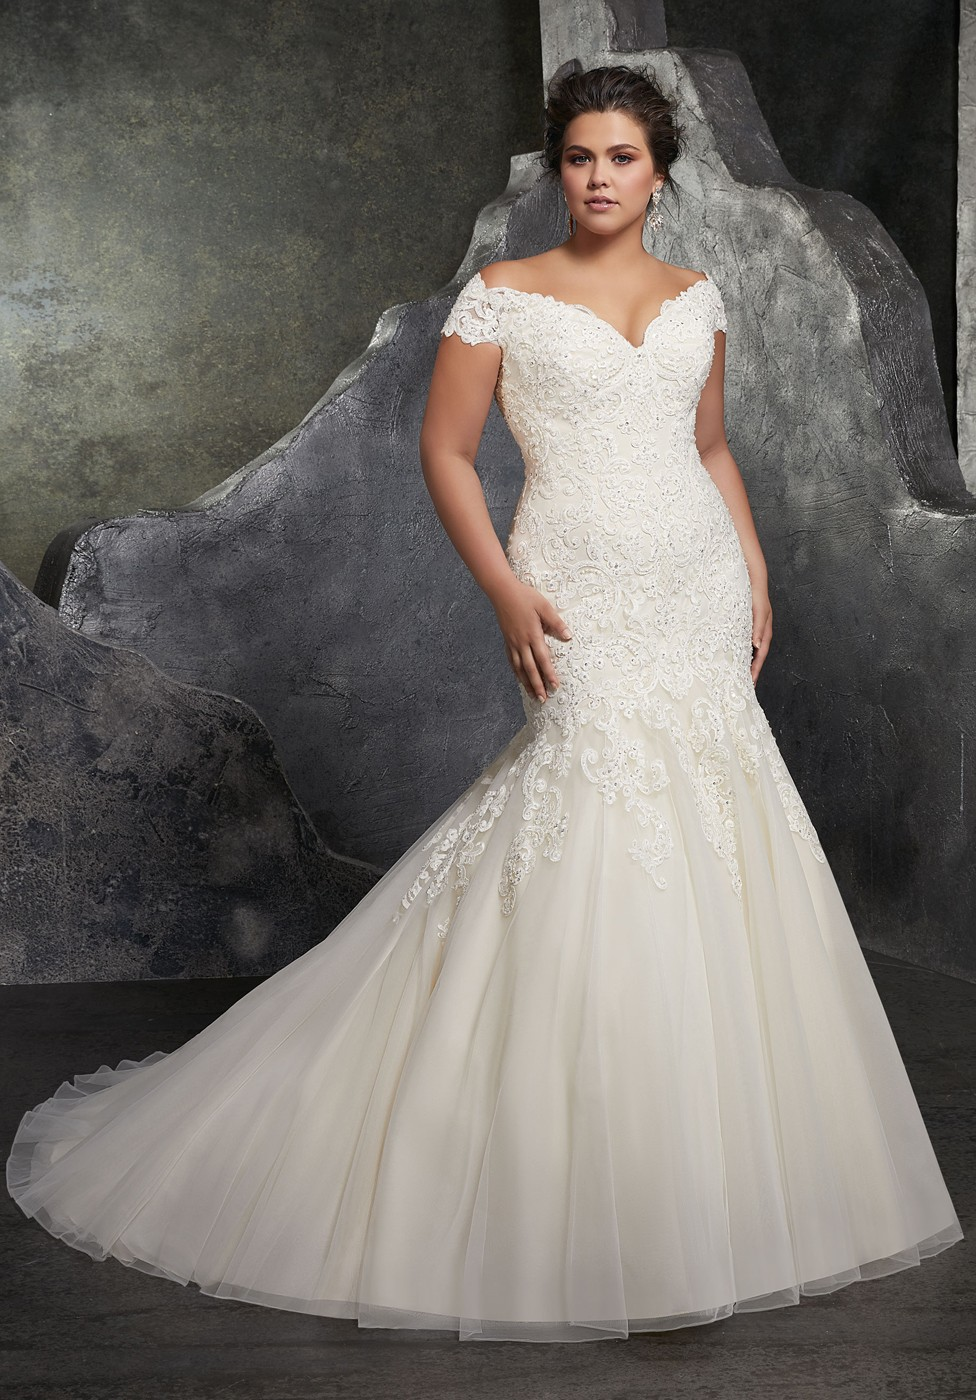 b8246d371dd1 Plus Size Wedding Gowns